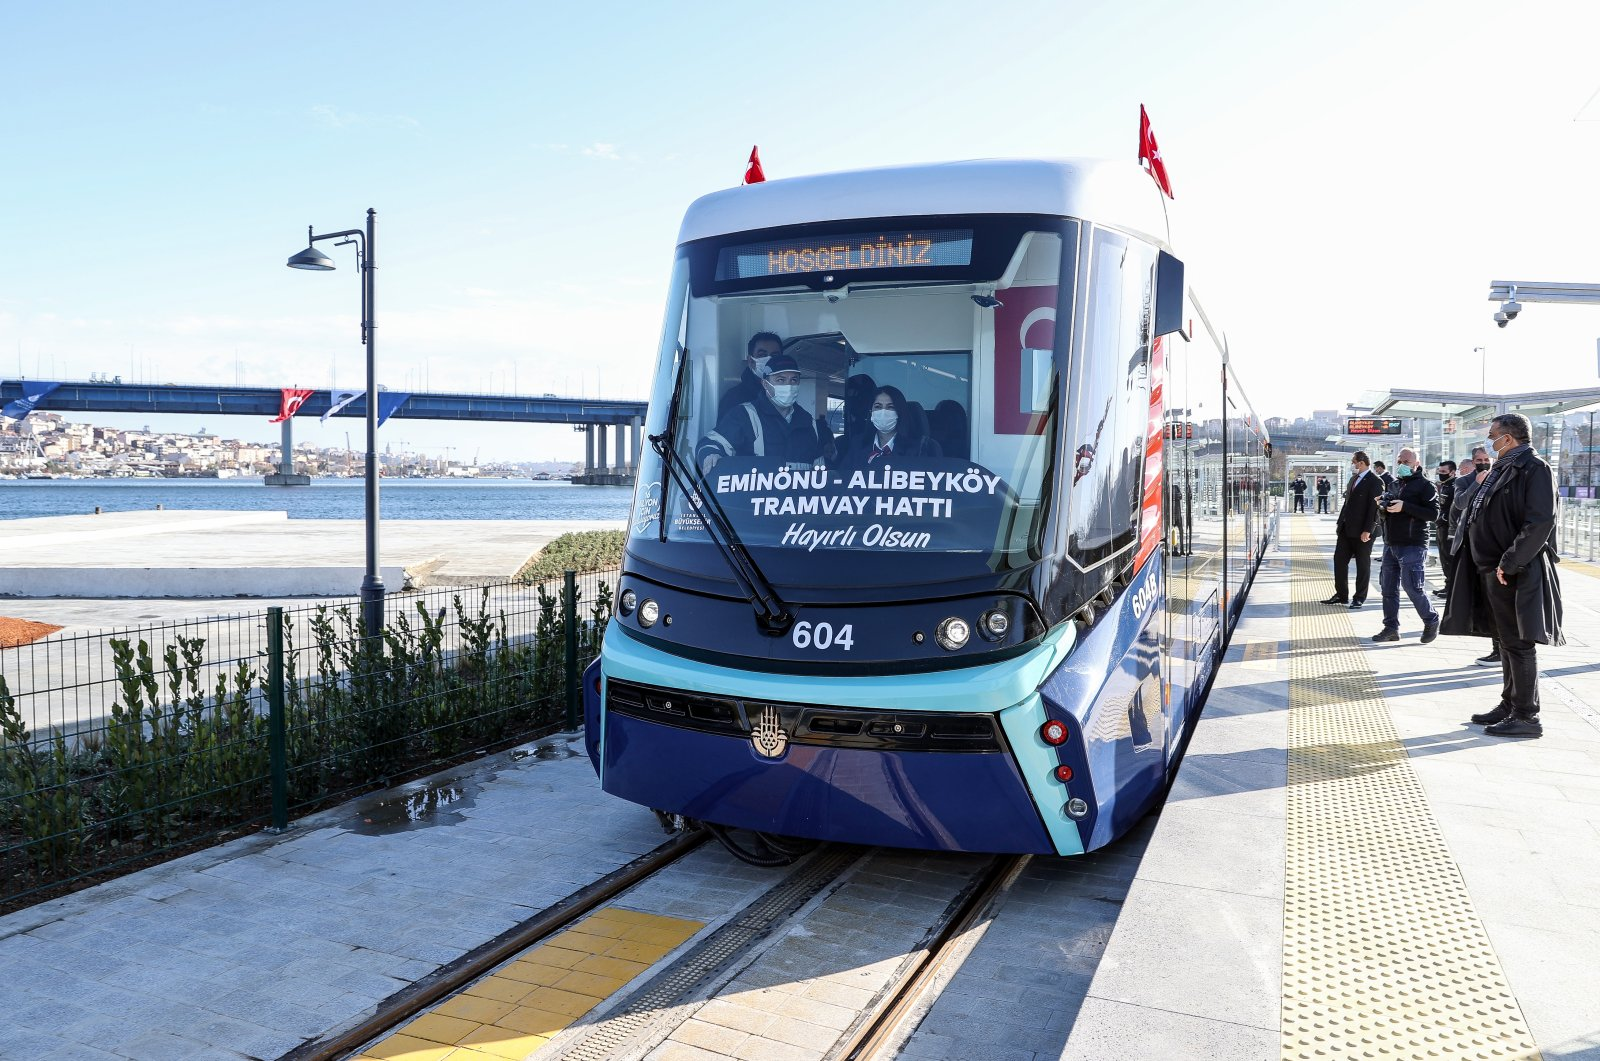 A rolling stock that will serve on the T5 Eminönü-Alibeyköy tram line seen during the inauguration ceremony, in Istanbul, on Jan. 01, 2020. (AA Photo)